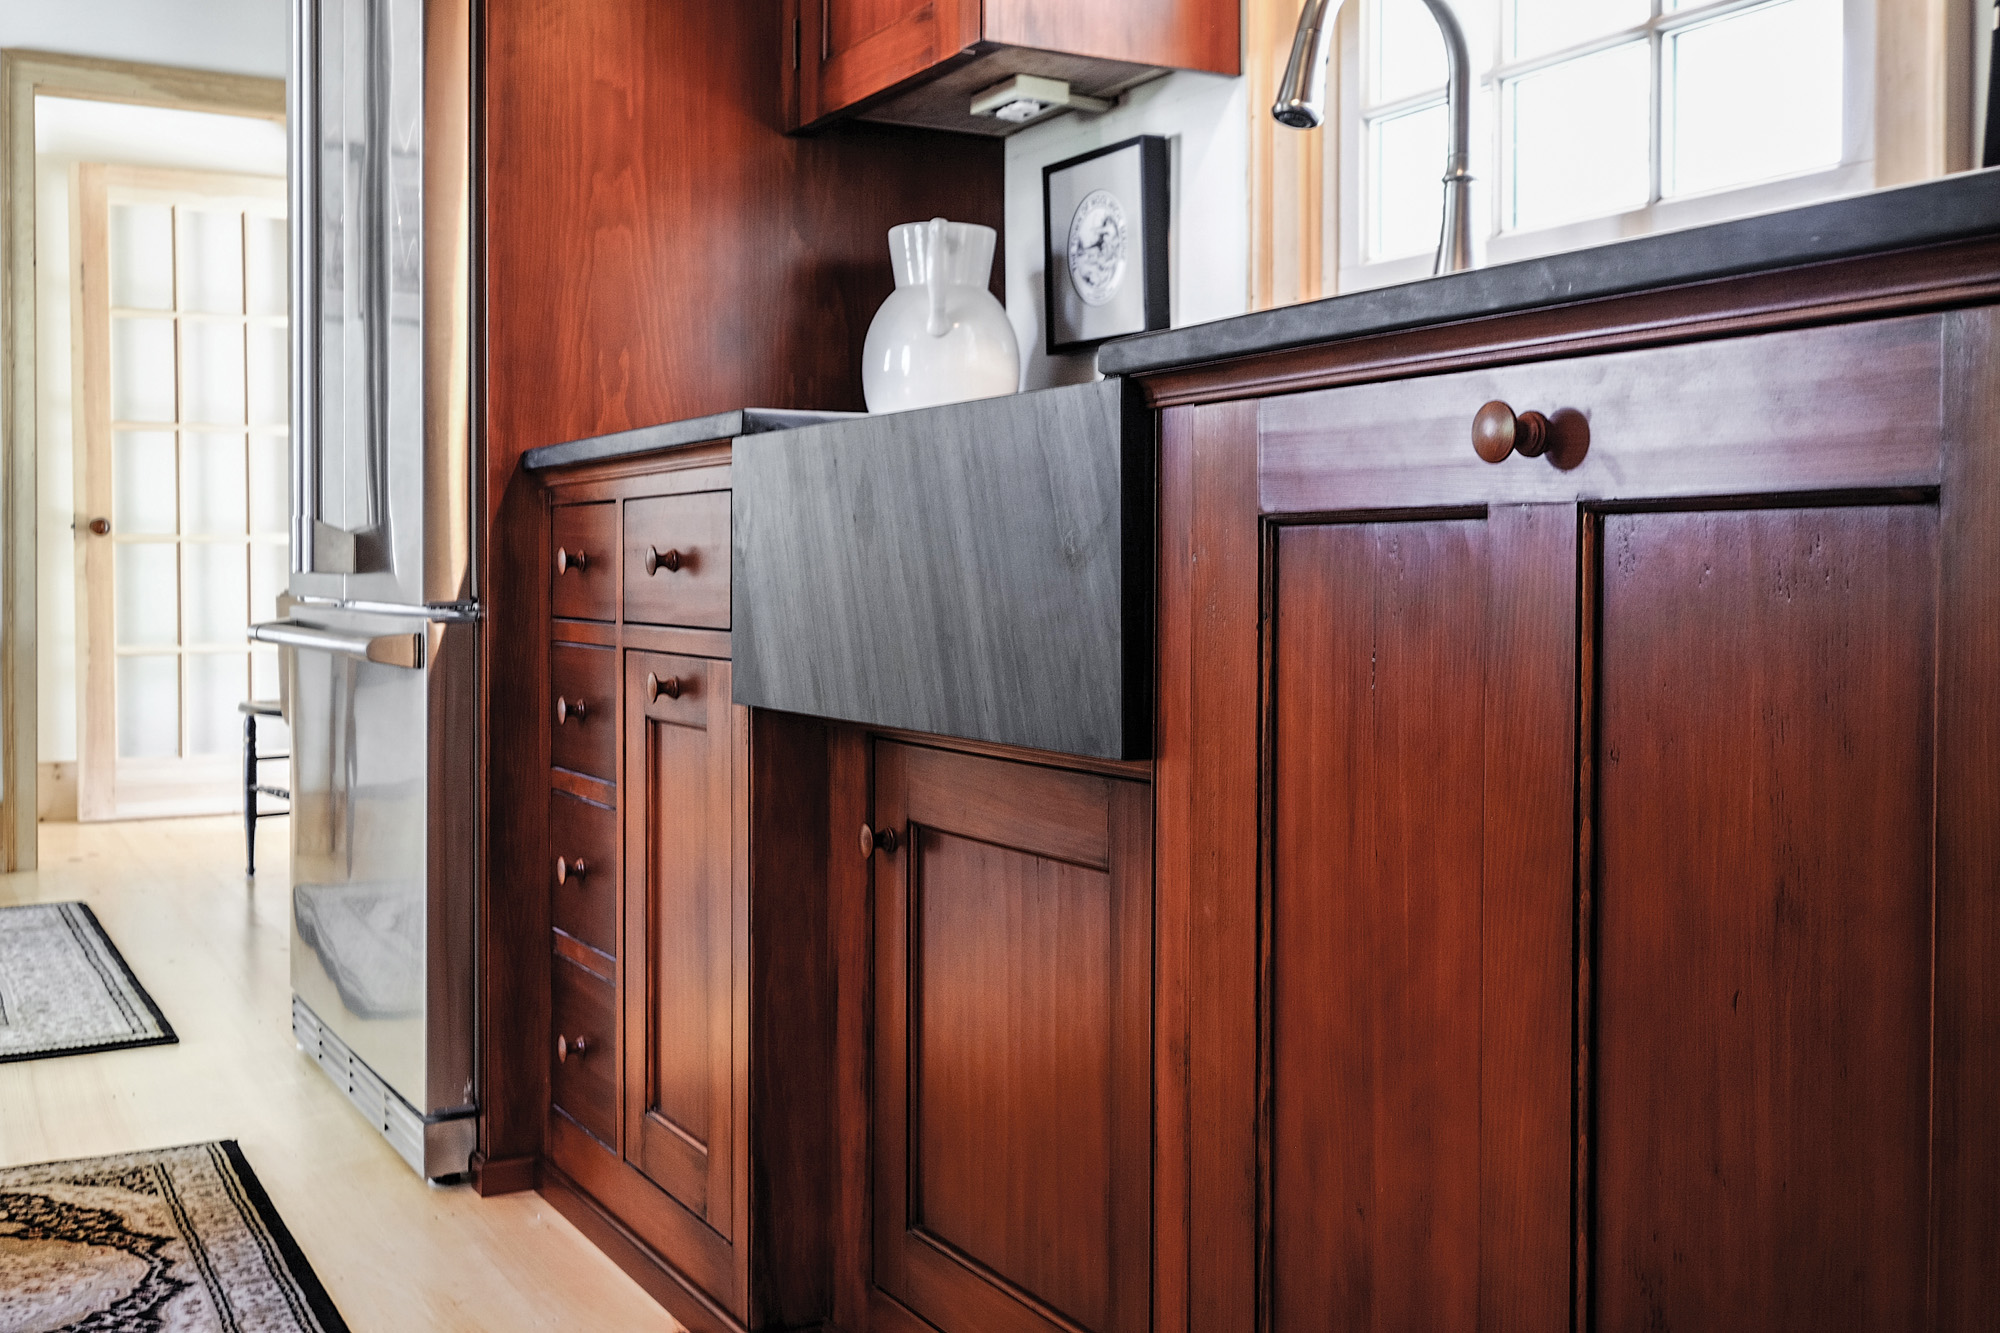 Kitchen cabinets for period houses restoration design for Period kitchen cabinets